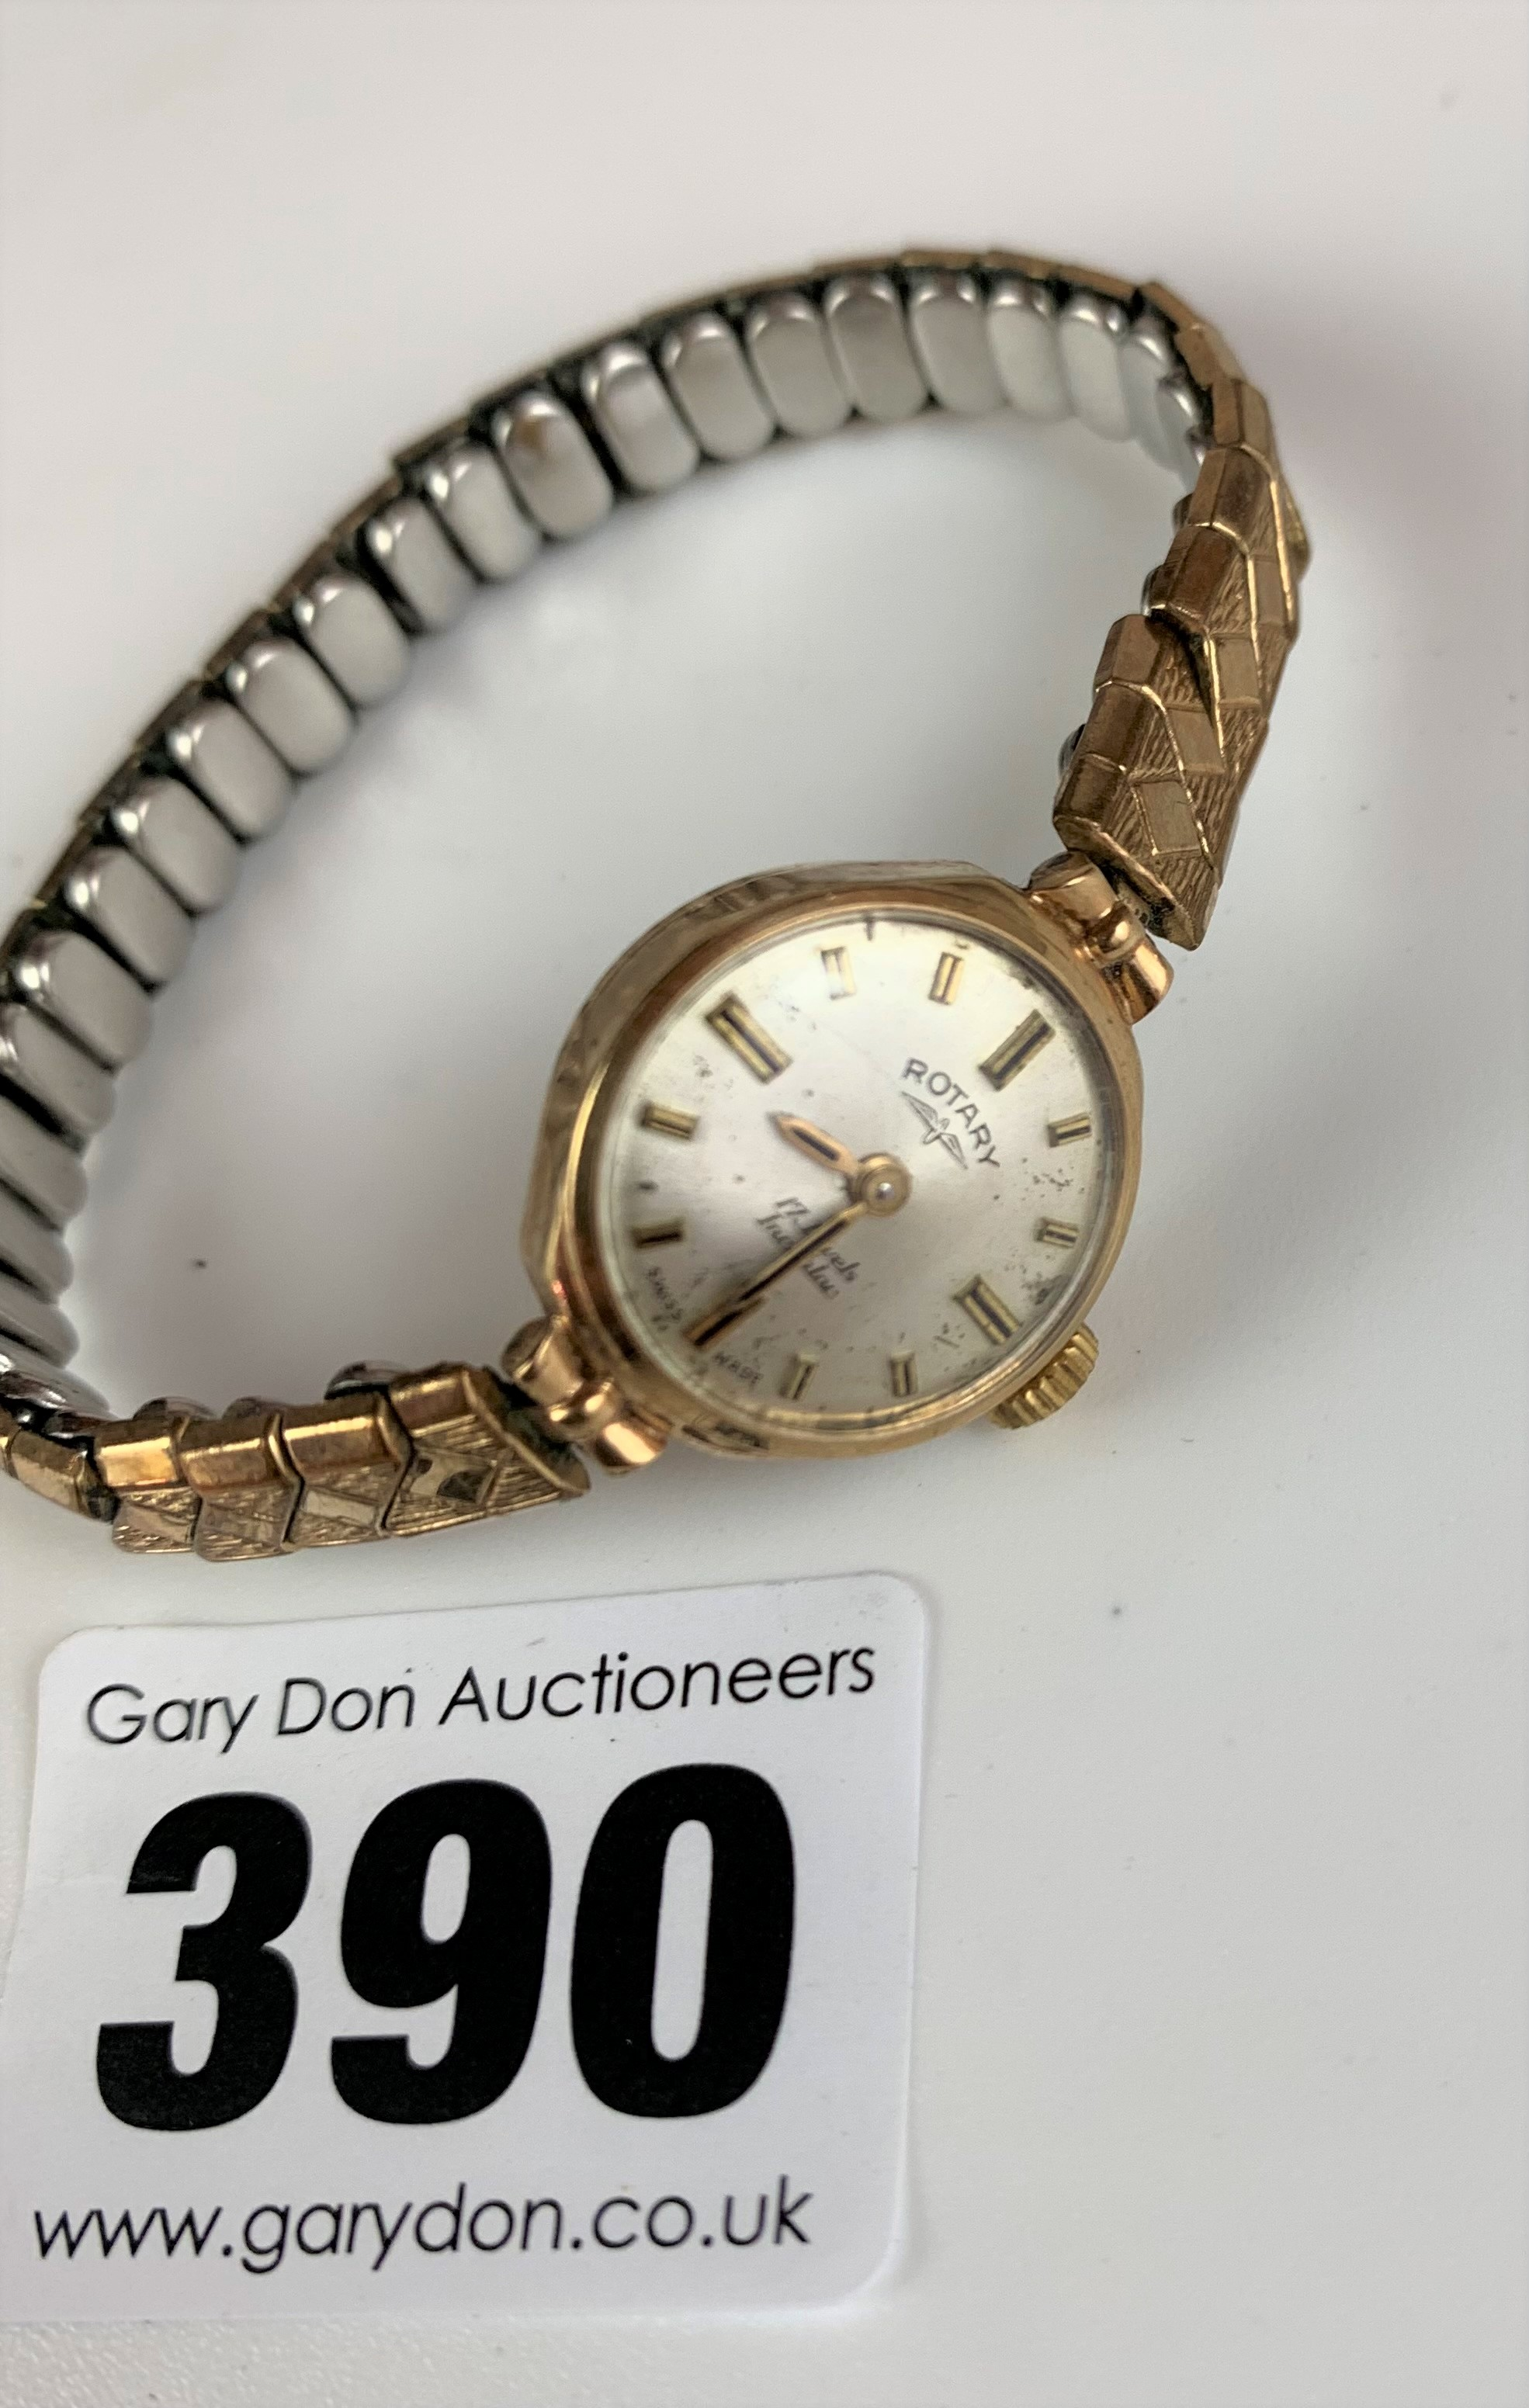 9k gold ladies Rotary watch with elasticated plated strap, total w: 15.3 gms, not working (pv £35) - Image 2 of 3